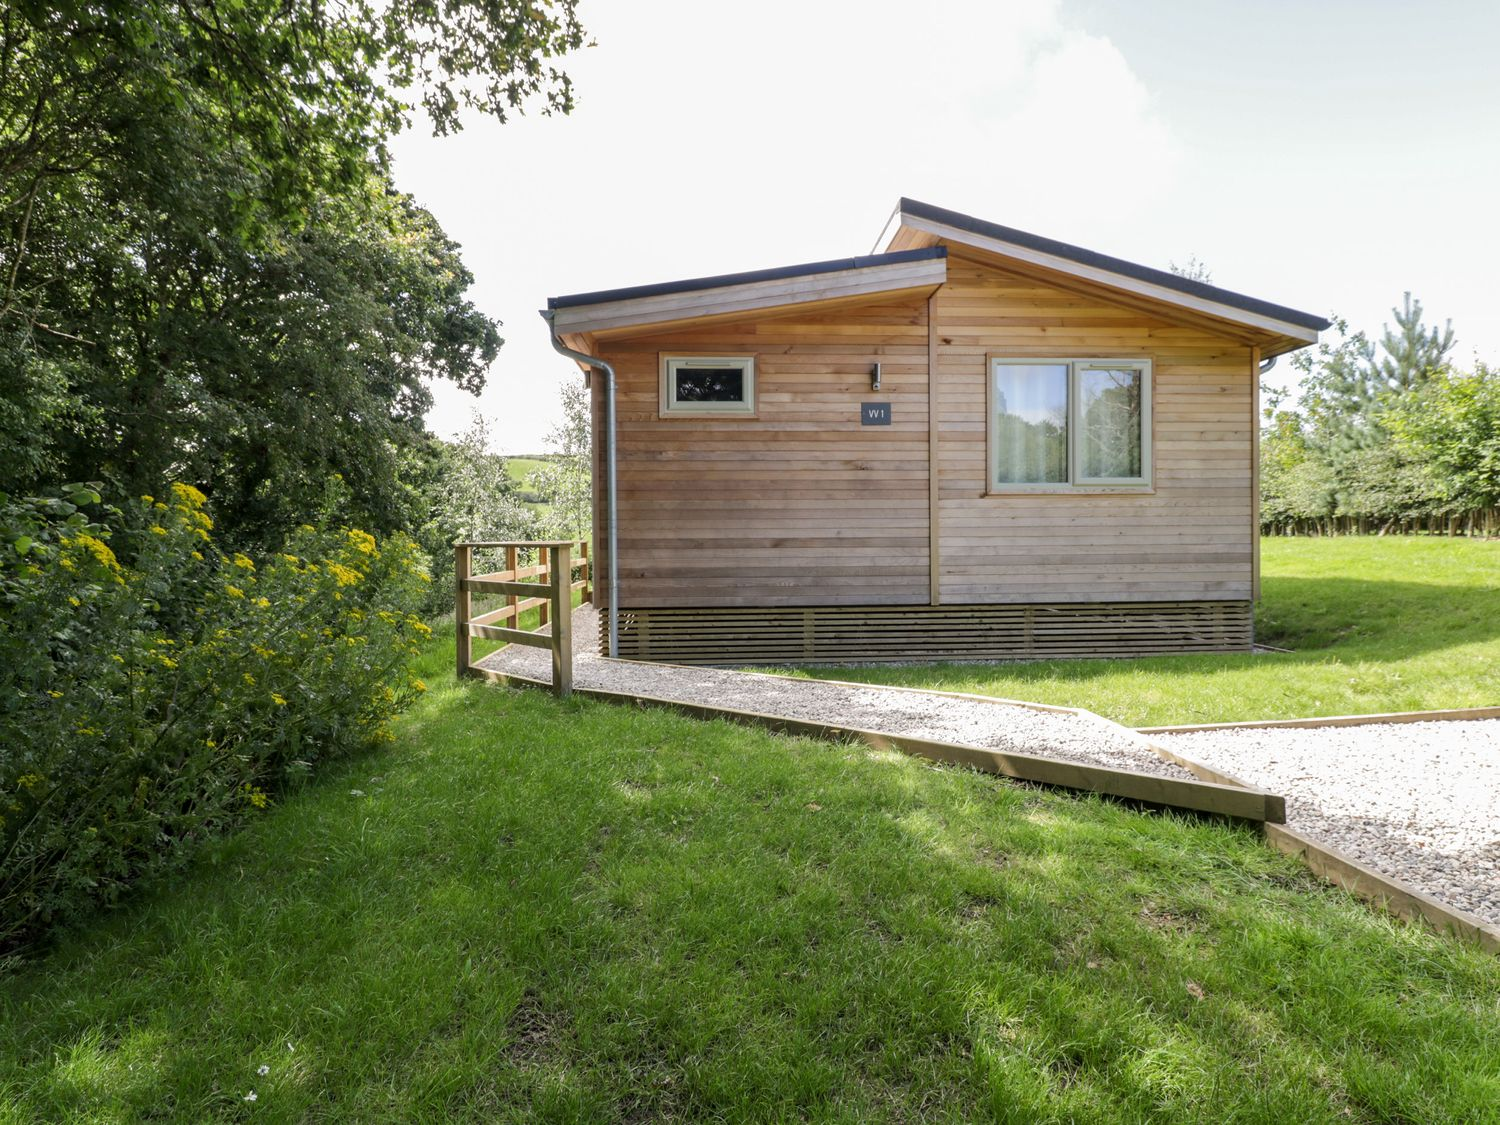 1 Valley View - Cornwall - 1025840 - photo 1